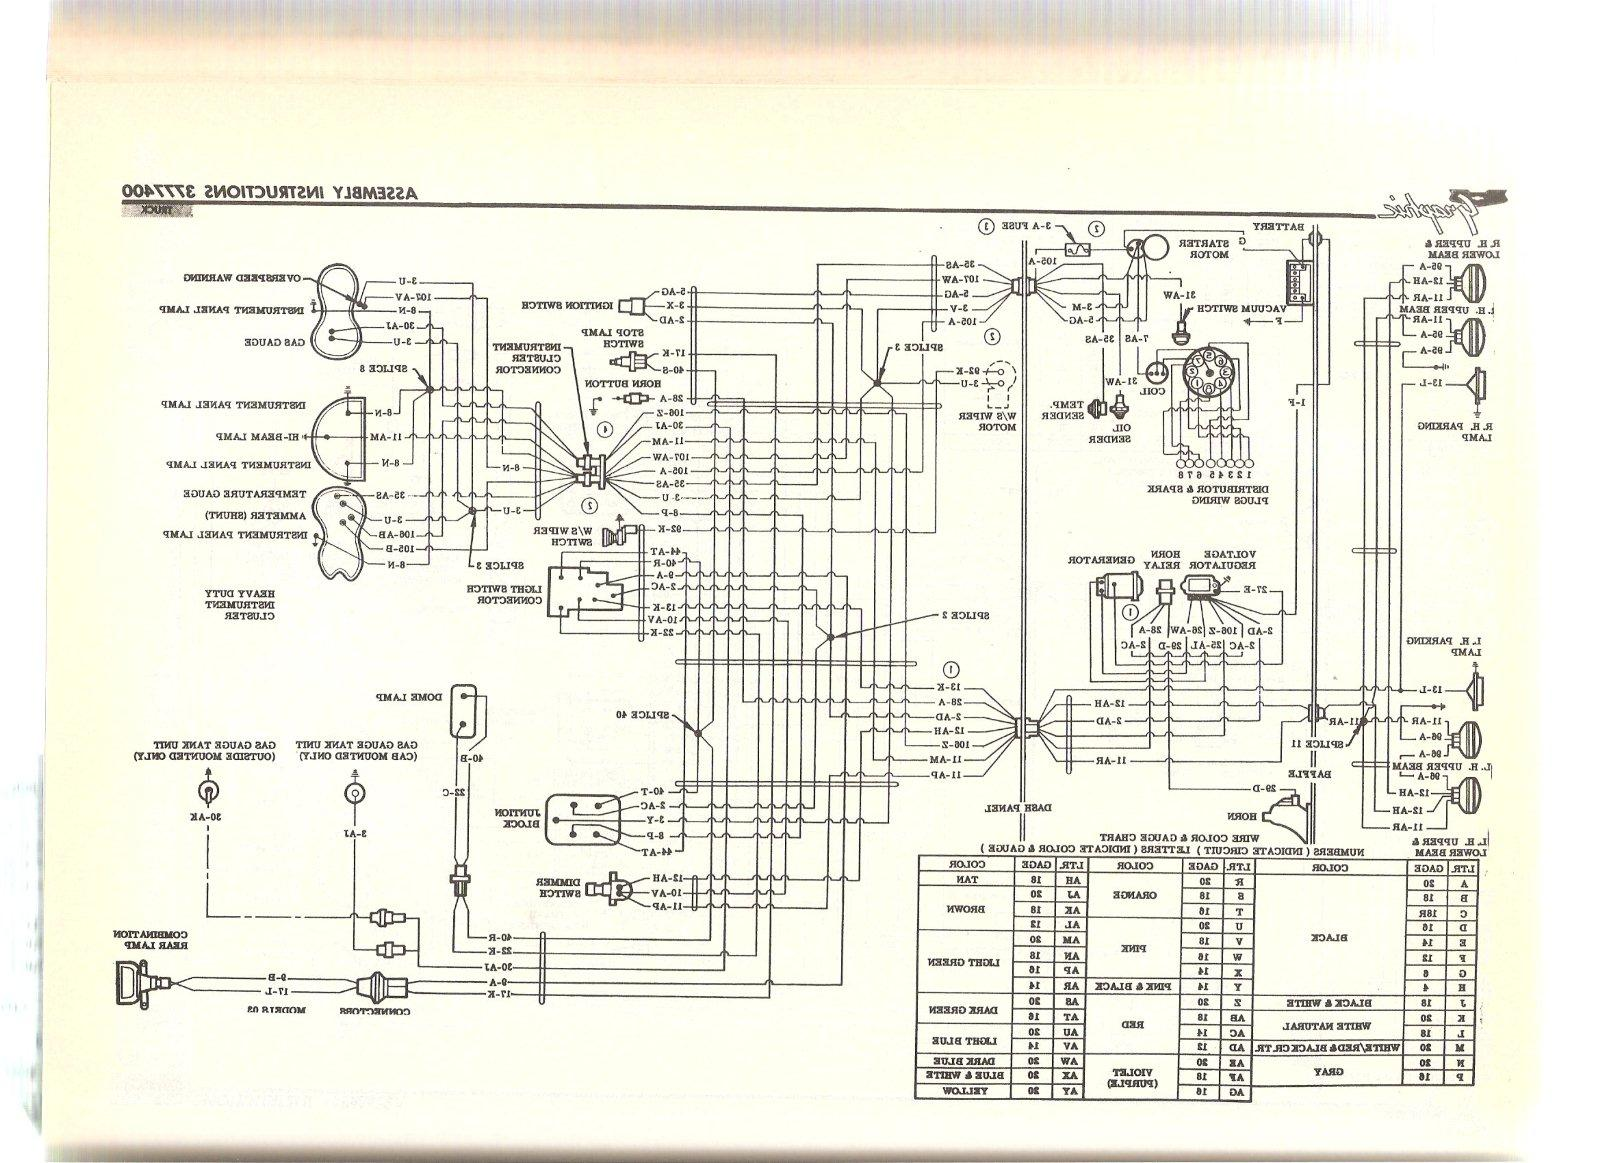 1976 lincoln continental wiring diagrams explore schematic wiring rh webwiringdiagram today 1965 Lincoln Wiring Diagrams Automotive Lincoln Wiring Diagrams Online